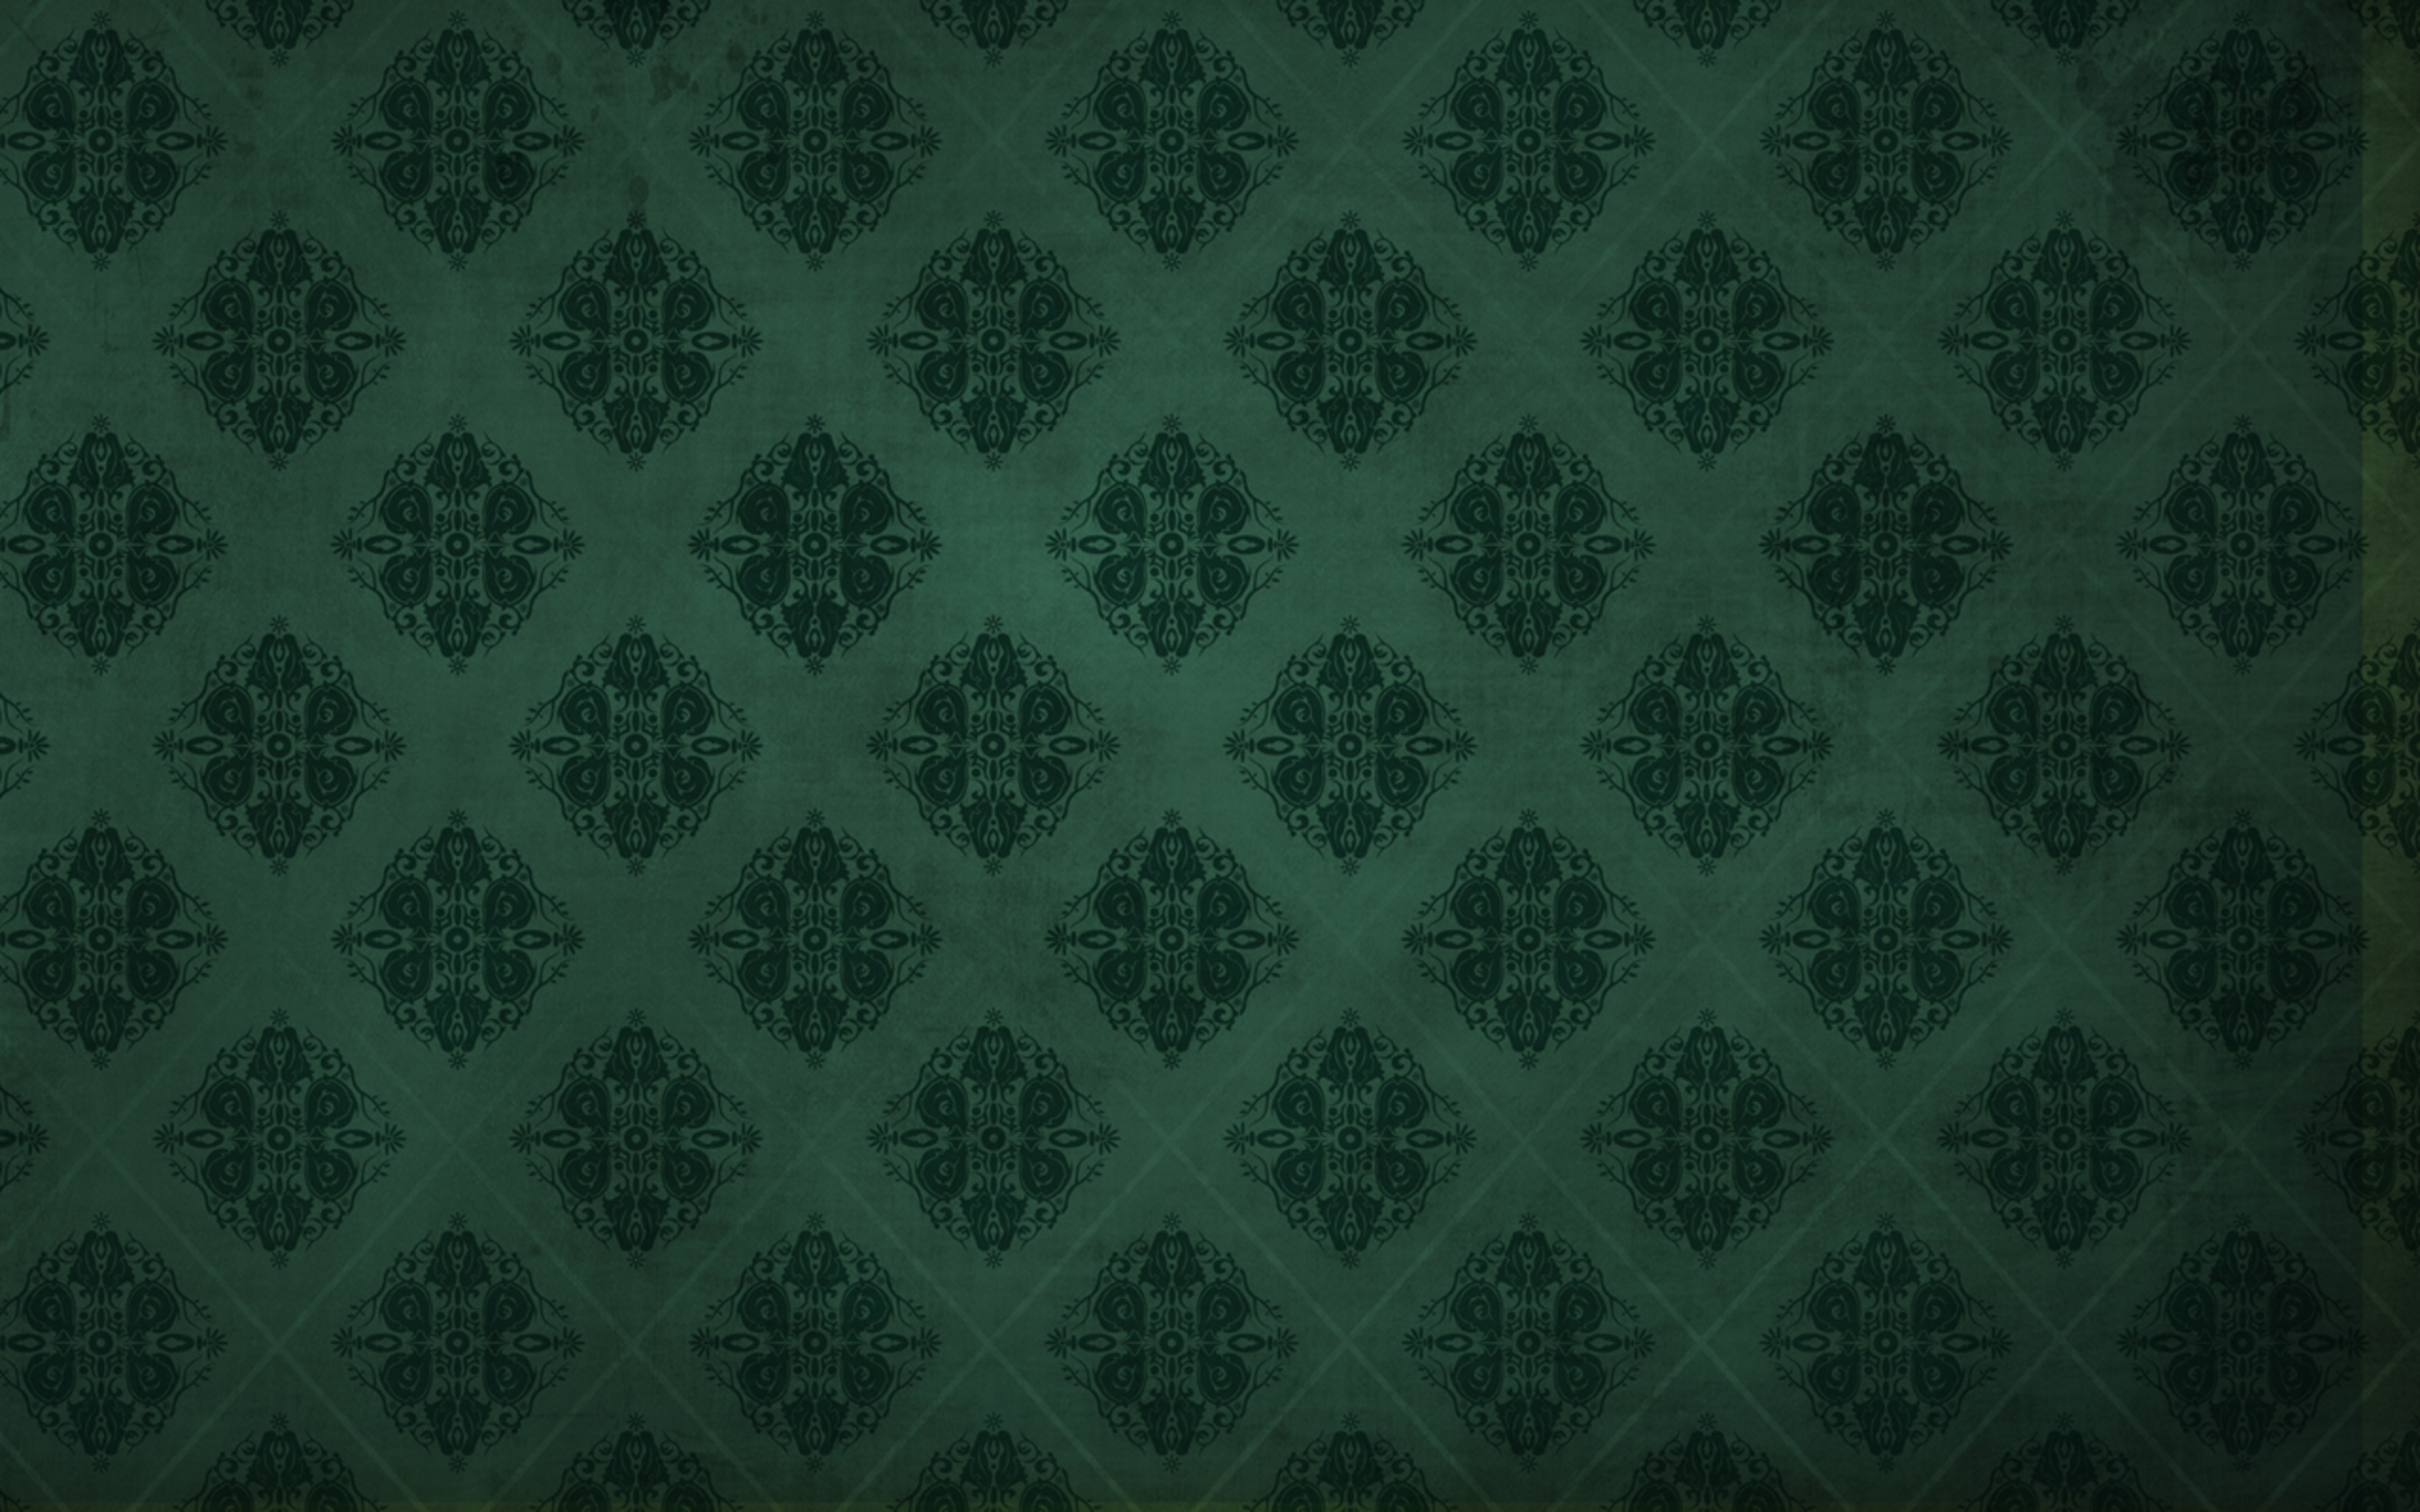 Pattern Full HD Wallpaper And Background Image